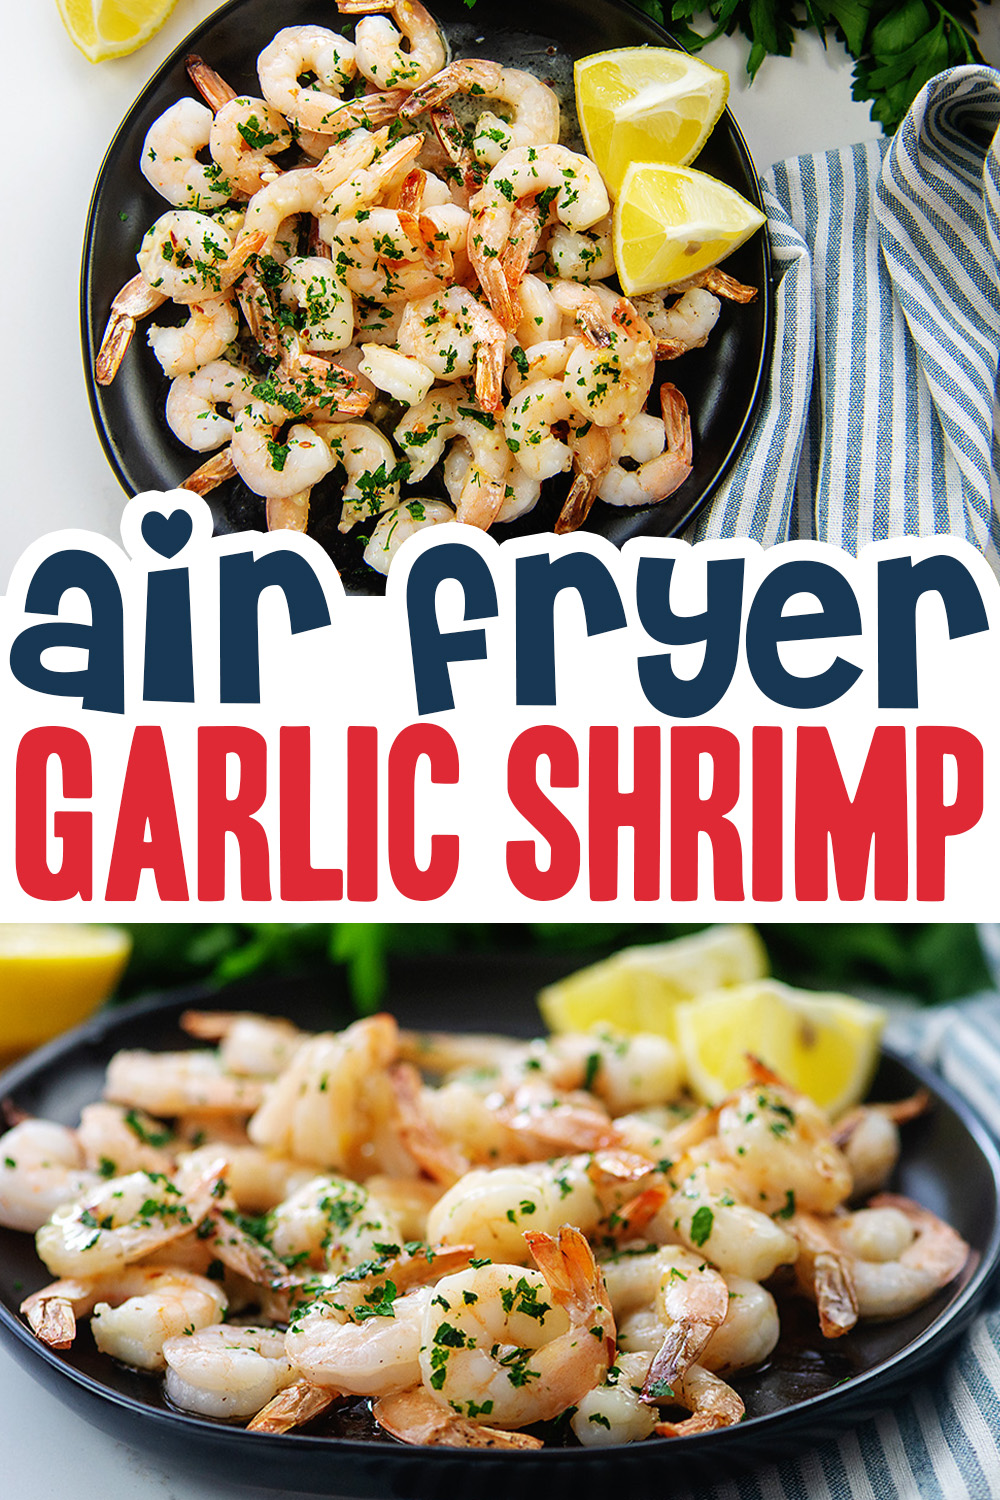 Low carb, keto, healthy, and easy! This frozen shrimp recipe is ready in just 10 minutes in the air fryer!